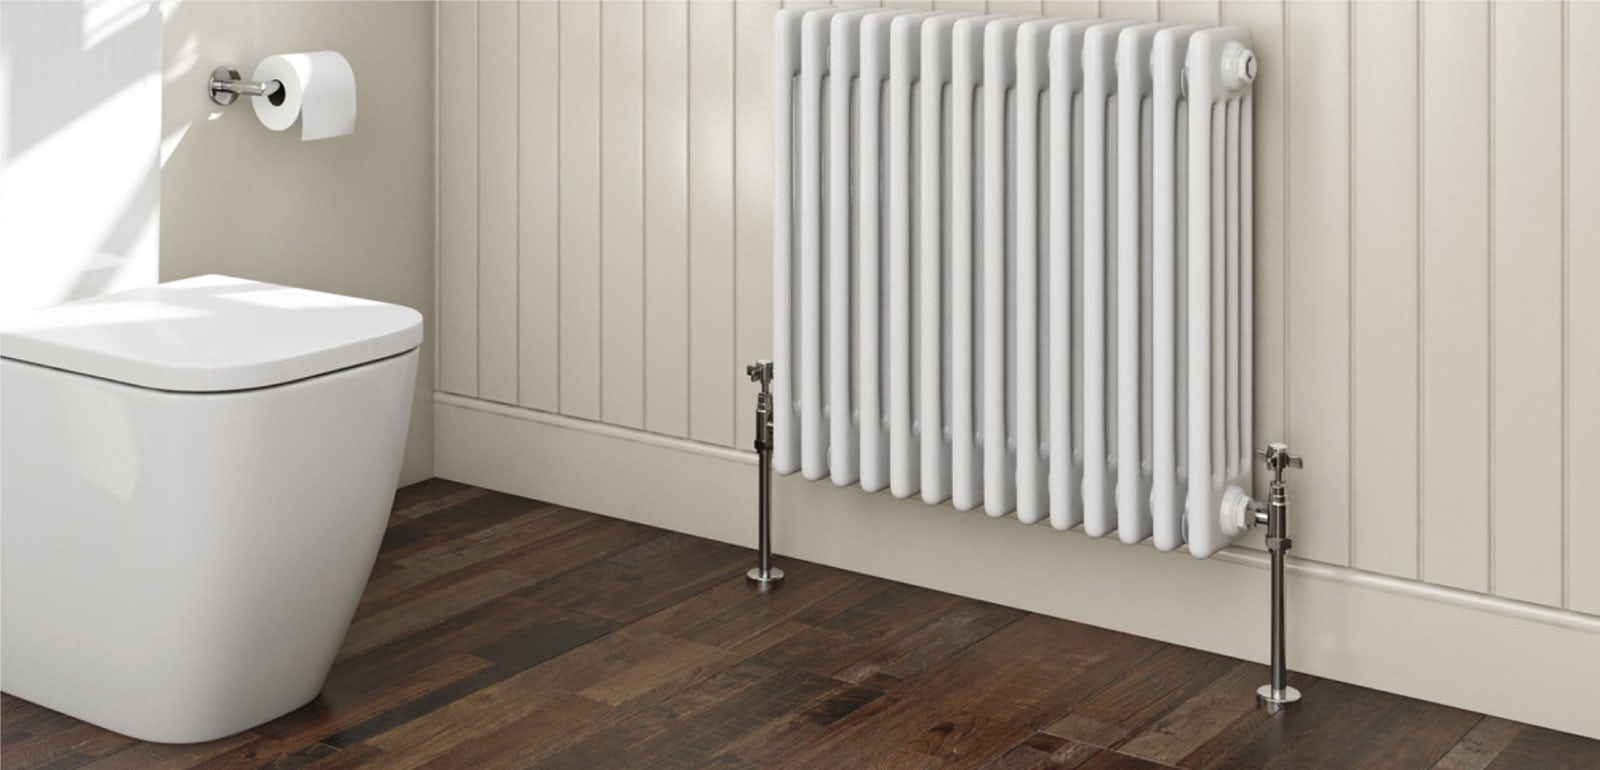 Spreading warmth around the world: The history of the radiator